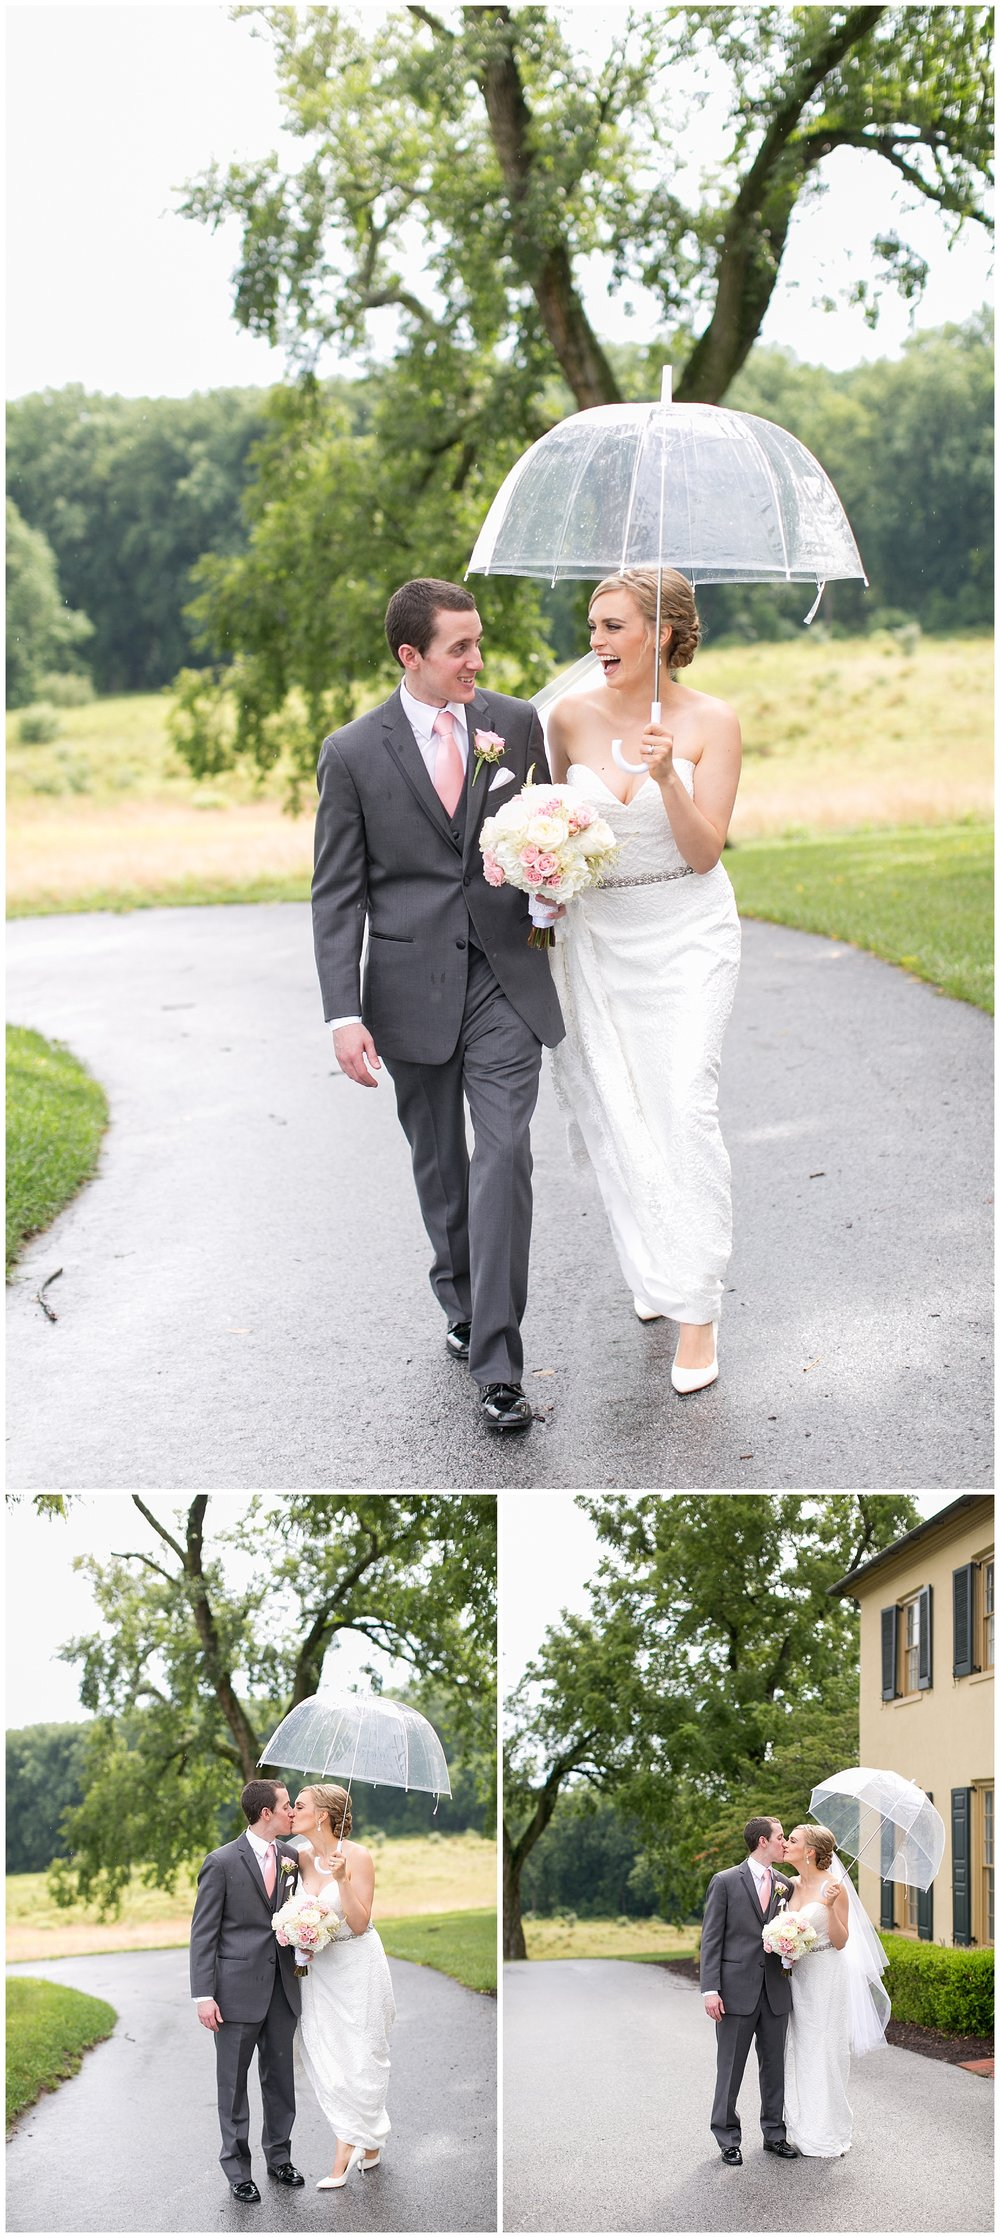 Leisawitz Belmont Manor Wedding Living Radiant Photography photos_0027.jpg